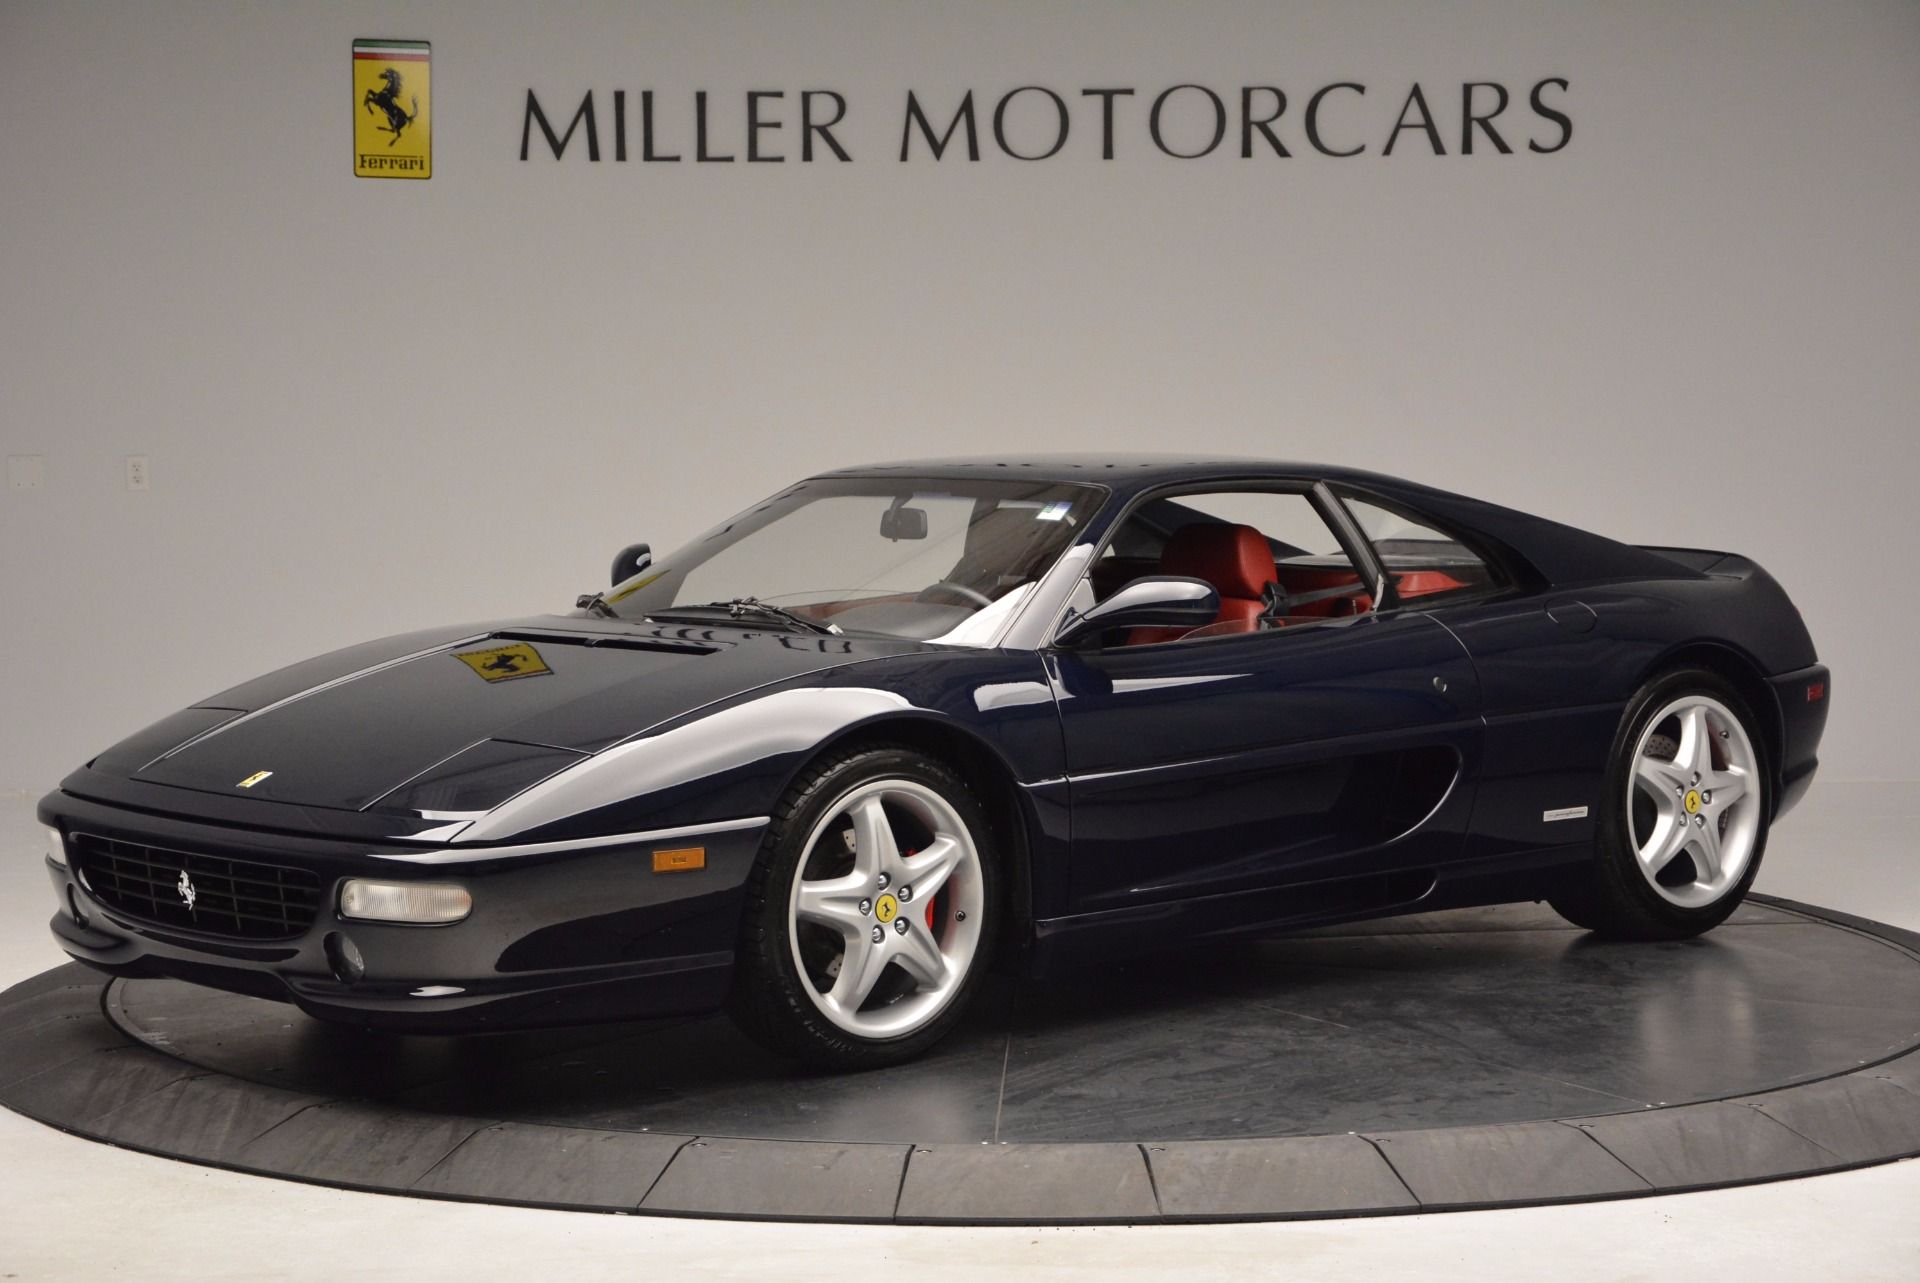 Used 1999 Ferrari 355 Berlinetta For Sale In Westport, CT 855_p3